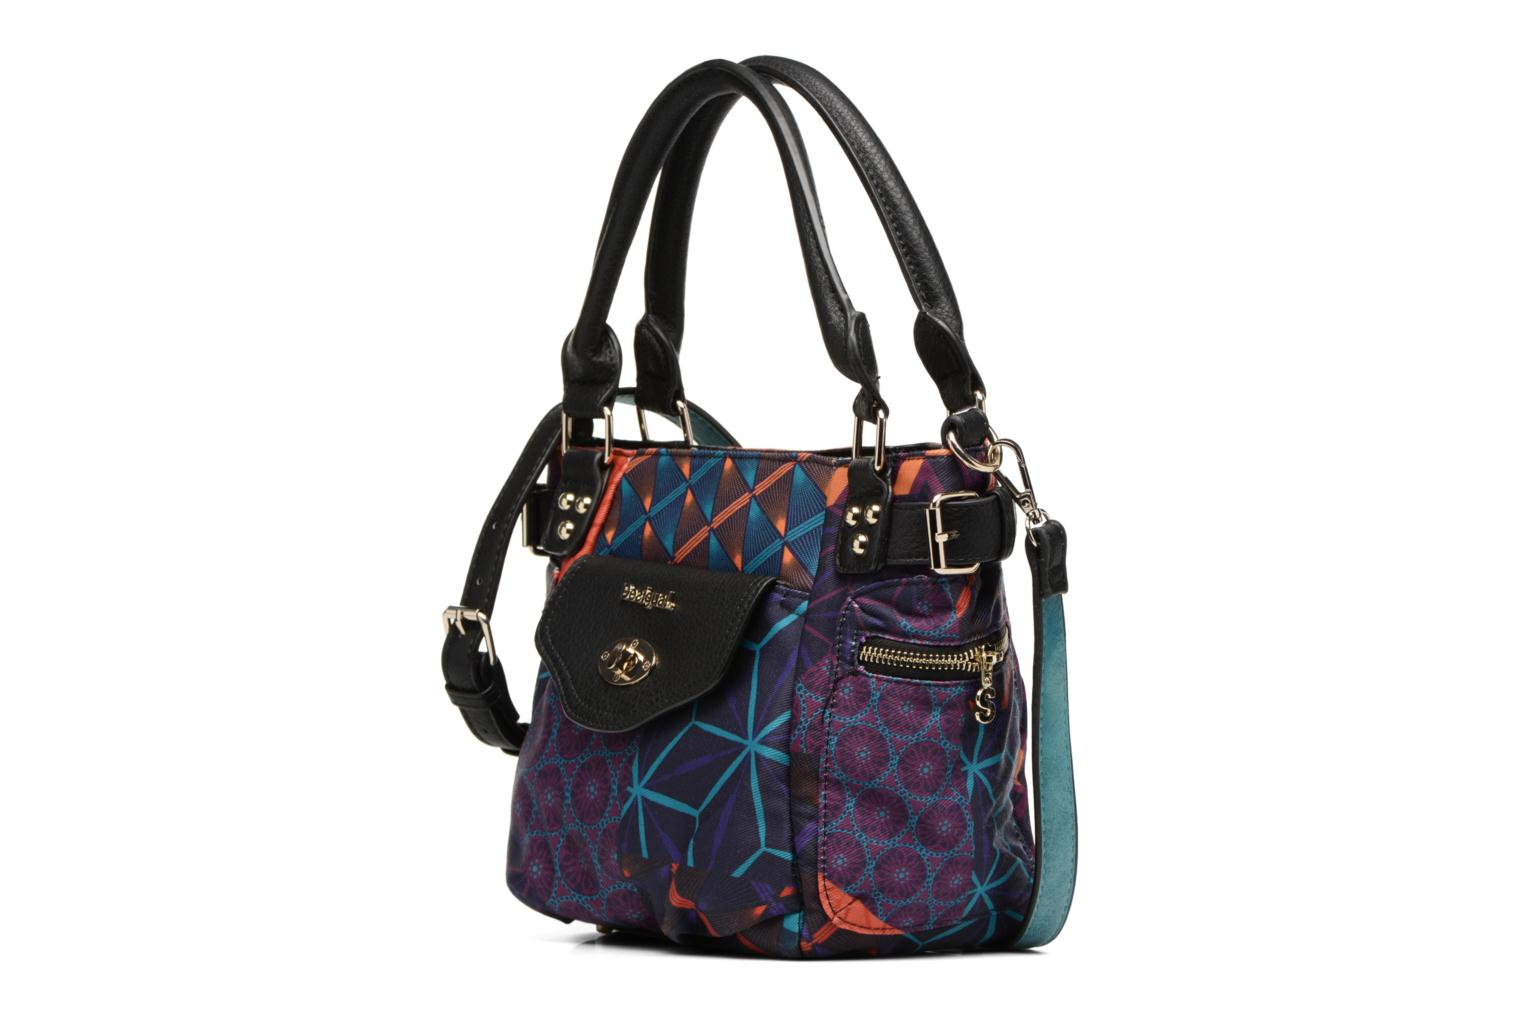 Mcbee Mini Erika Handbag Purpura